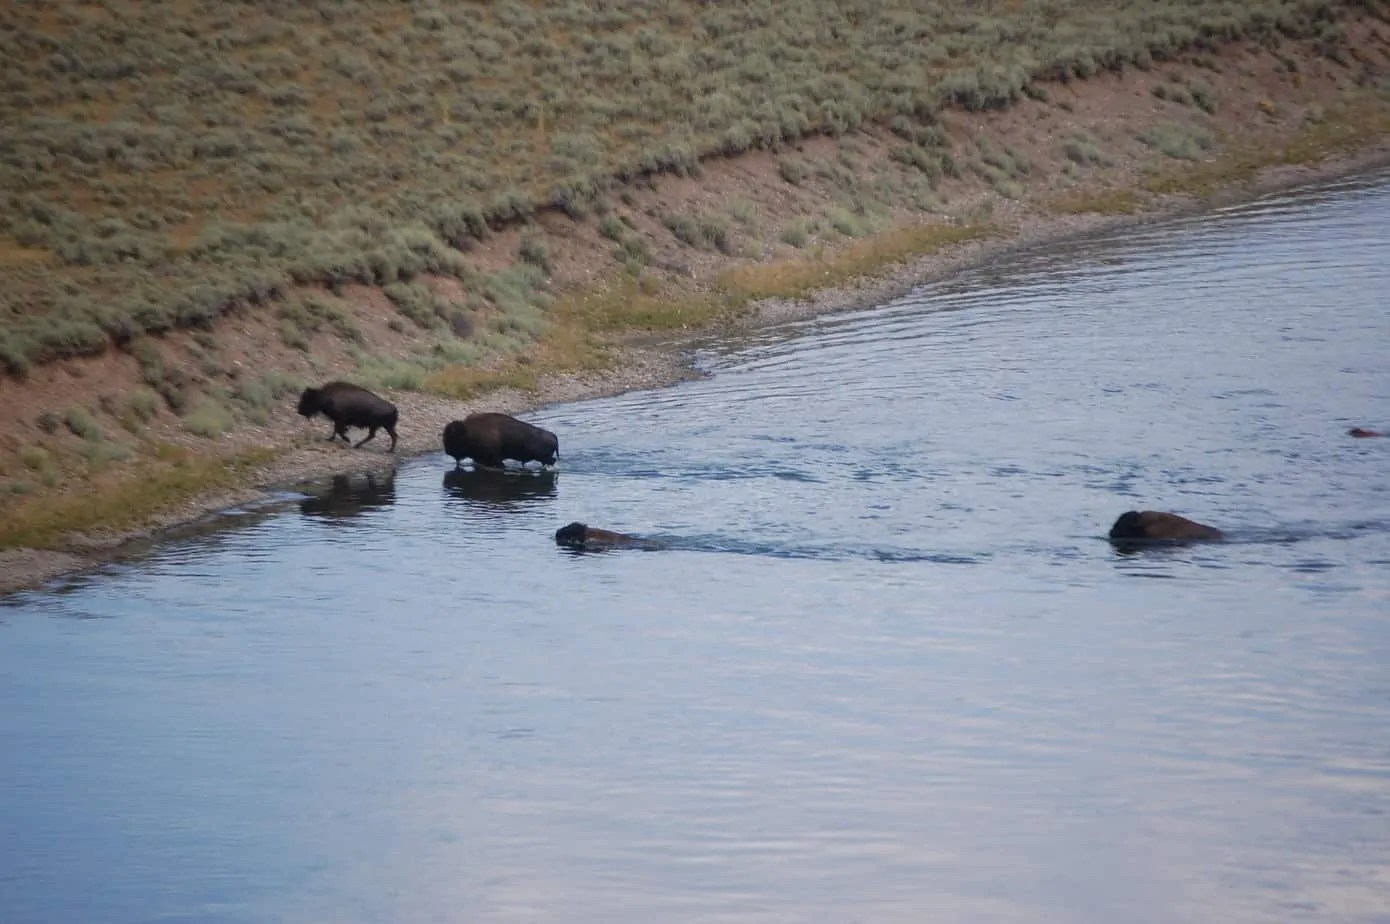 Bison Crossing River Teton National Park